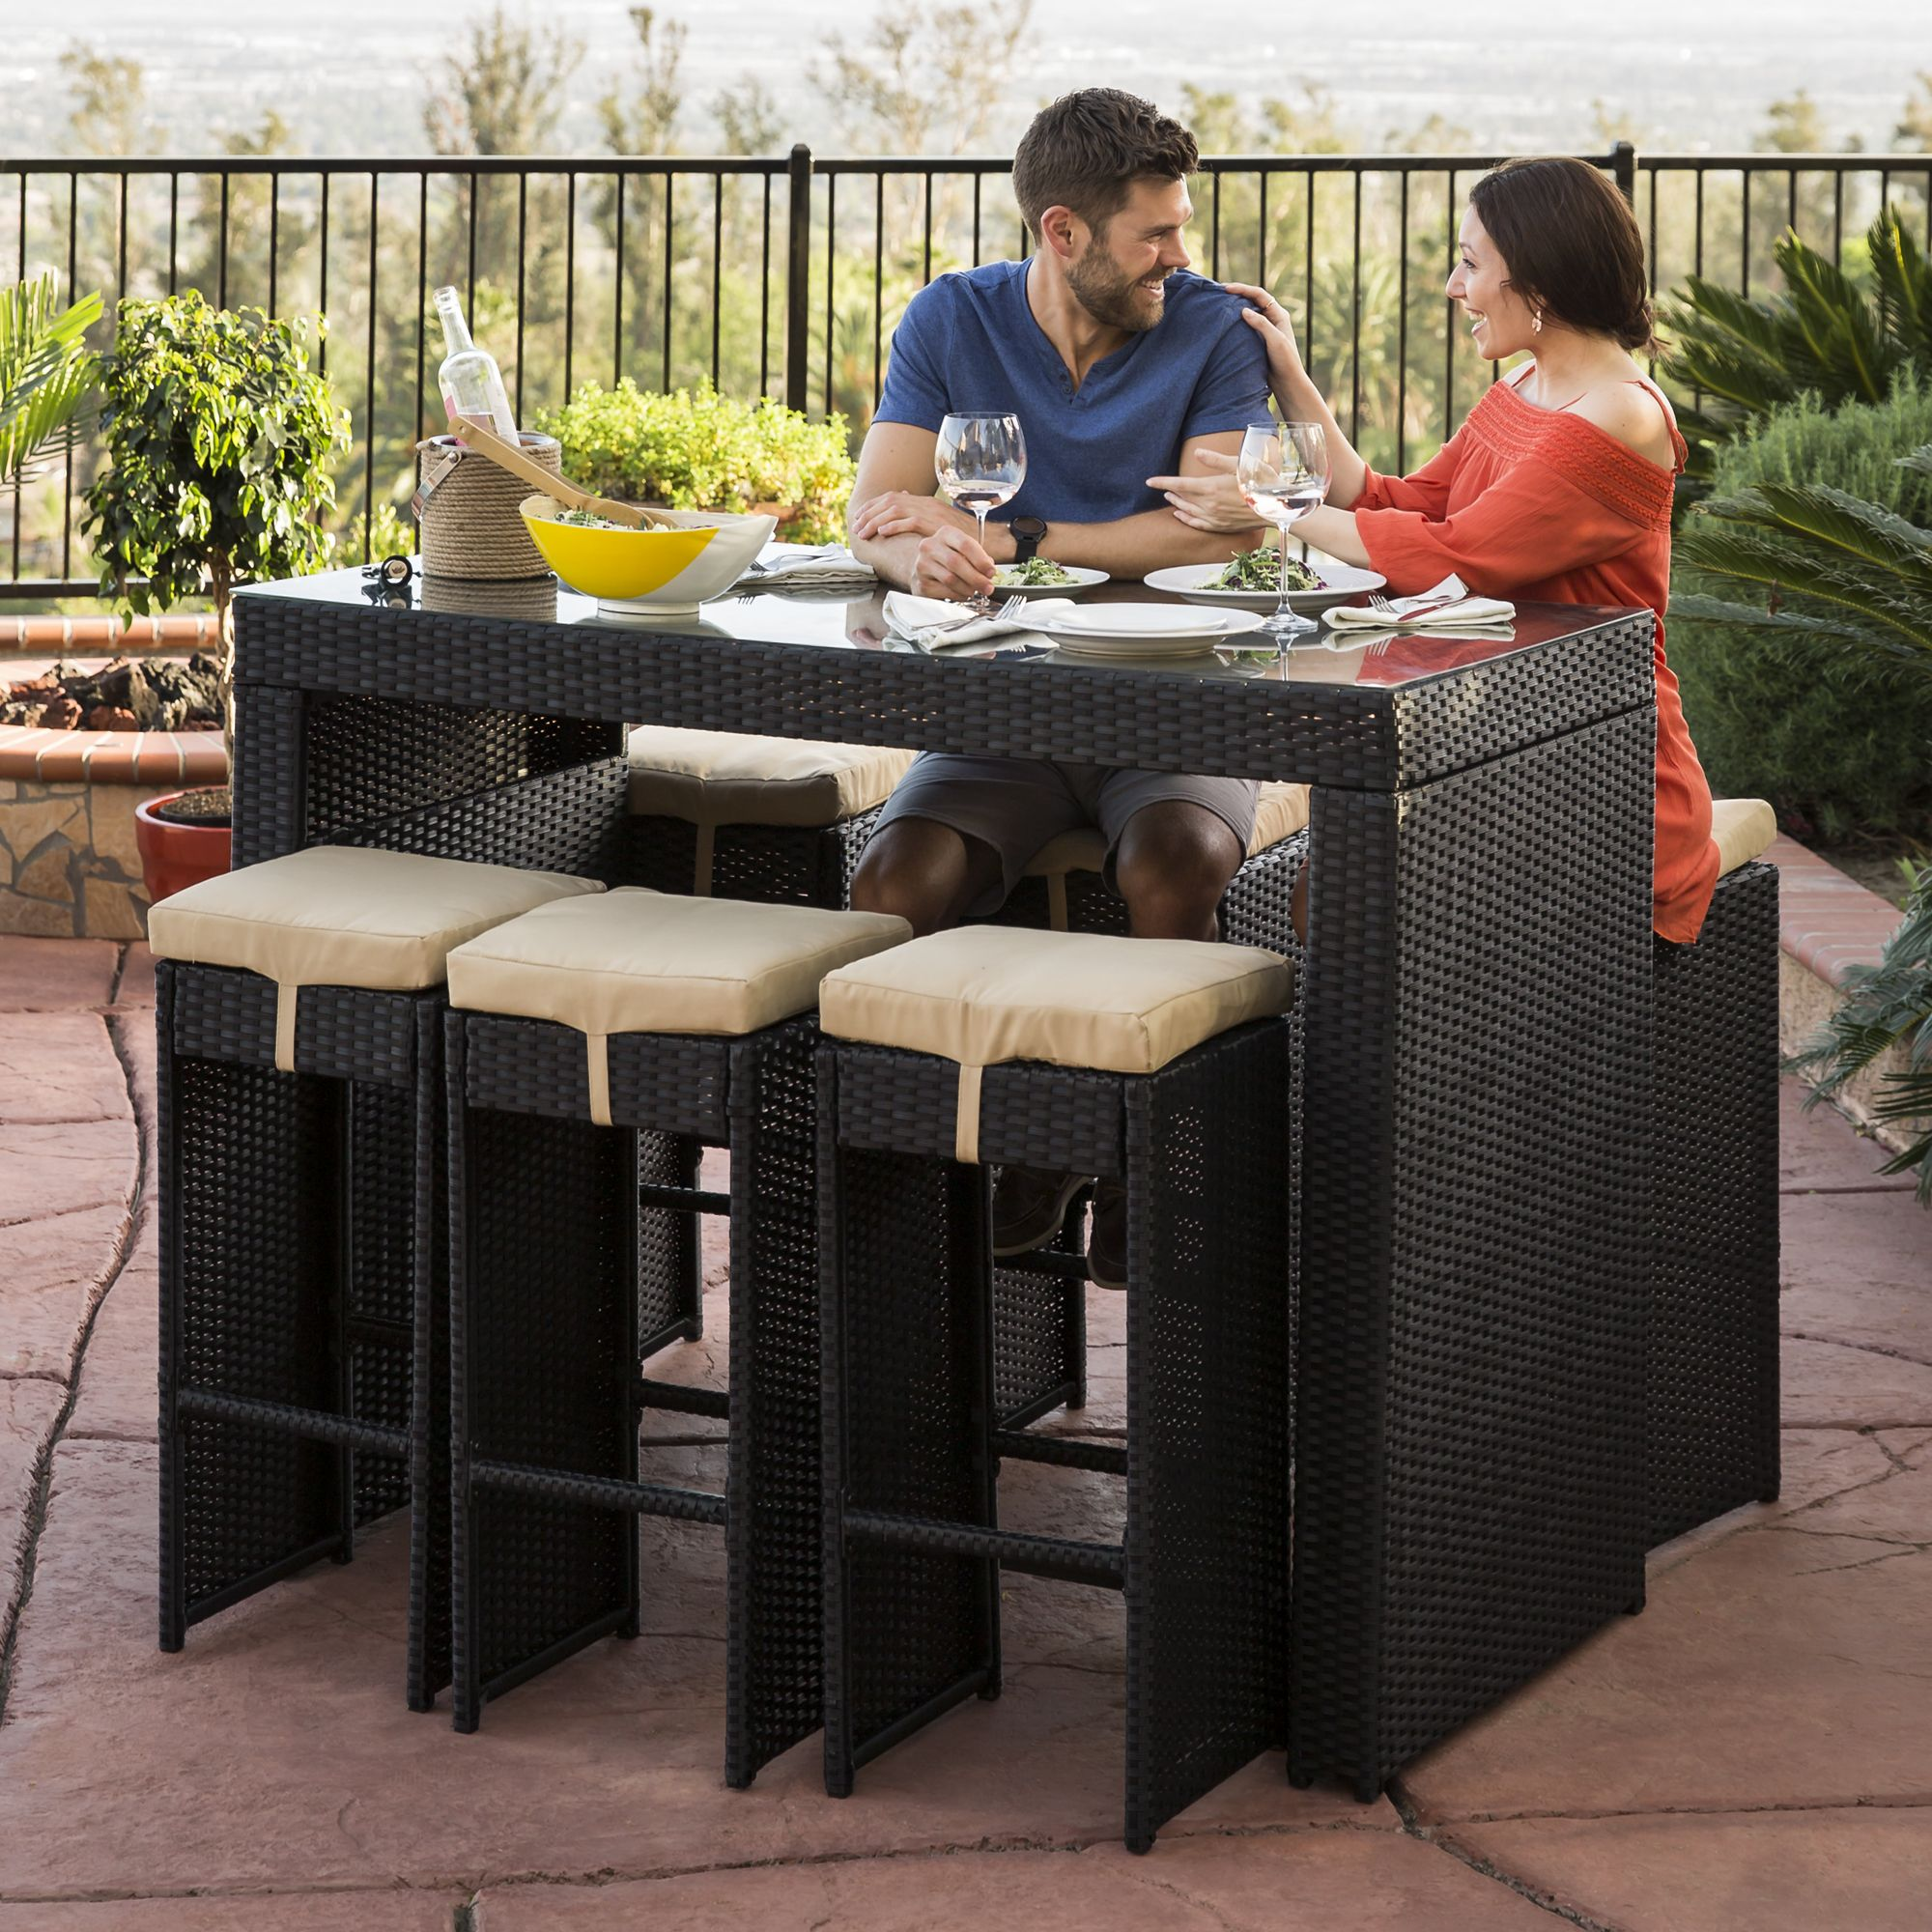 Best Choice Products 7 Piece Outdoor Rattan Wicker Bar Dining